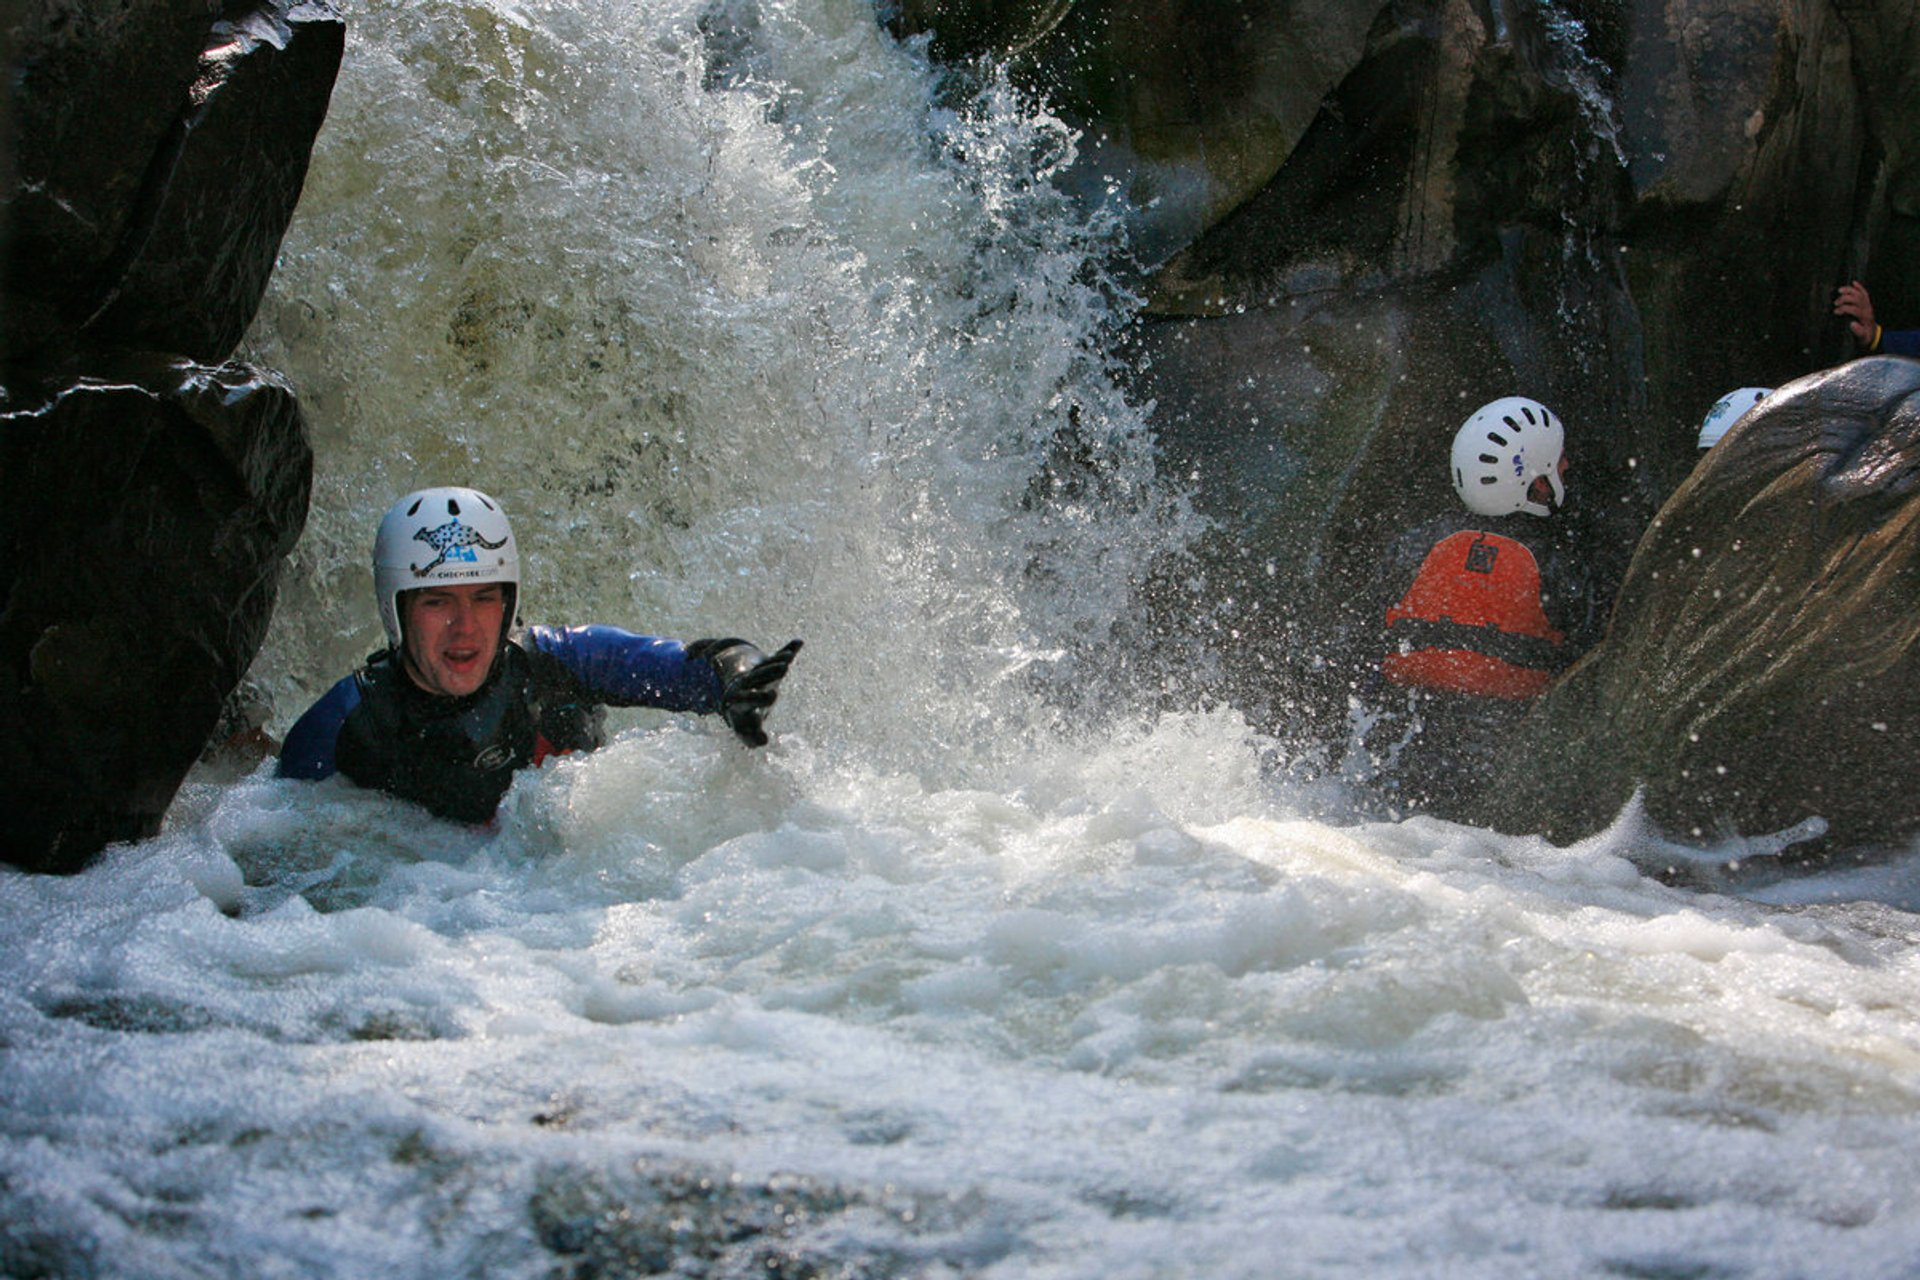 Canyoning and Gorge Walking in Scotland 2019 - Best Time